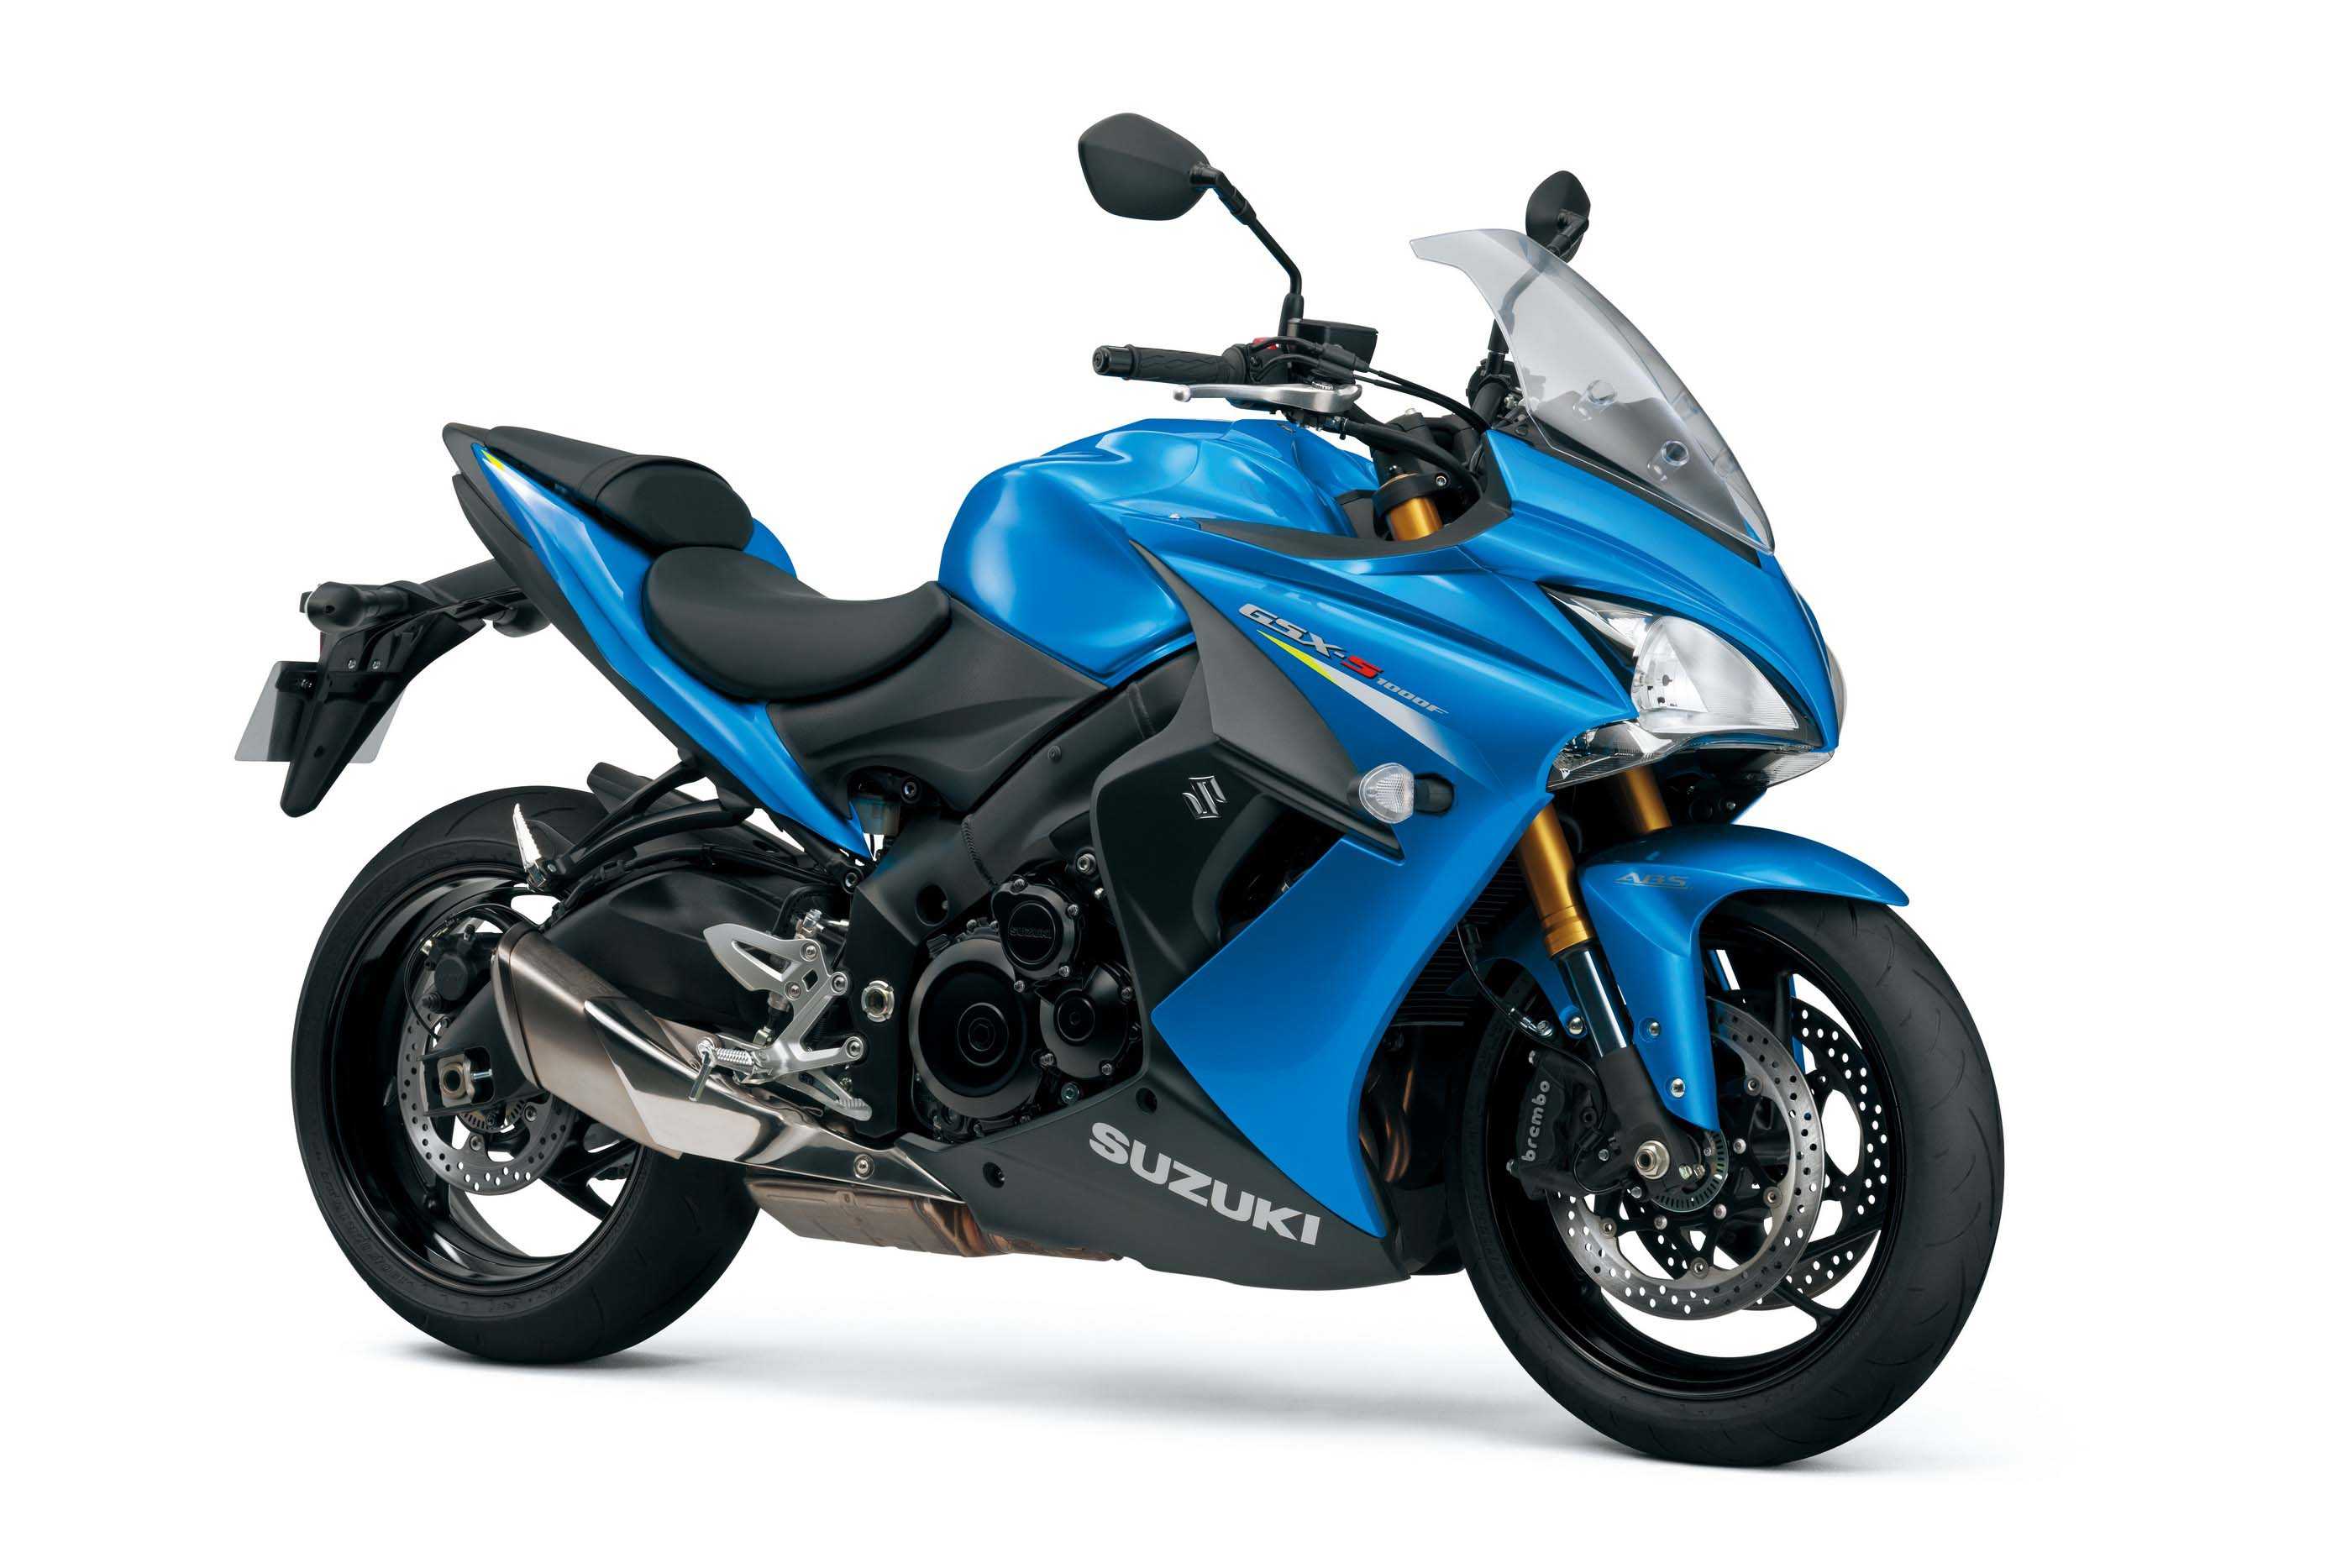 2015 suzuki gsx s1000f a sporty sport tourer asphalt rubber. Black Bedroom Furniture Sets. Home Design Ideas